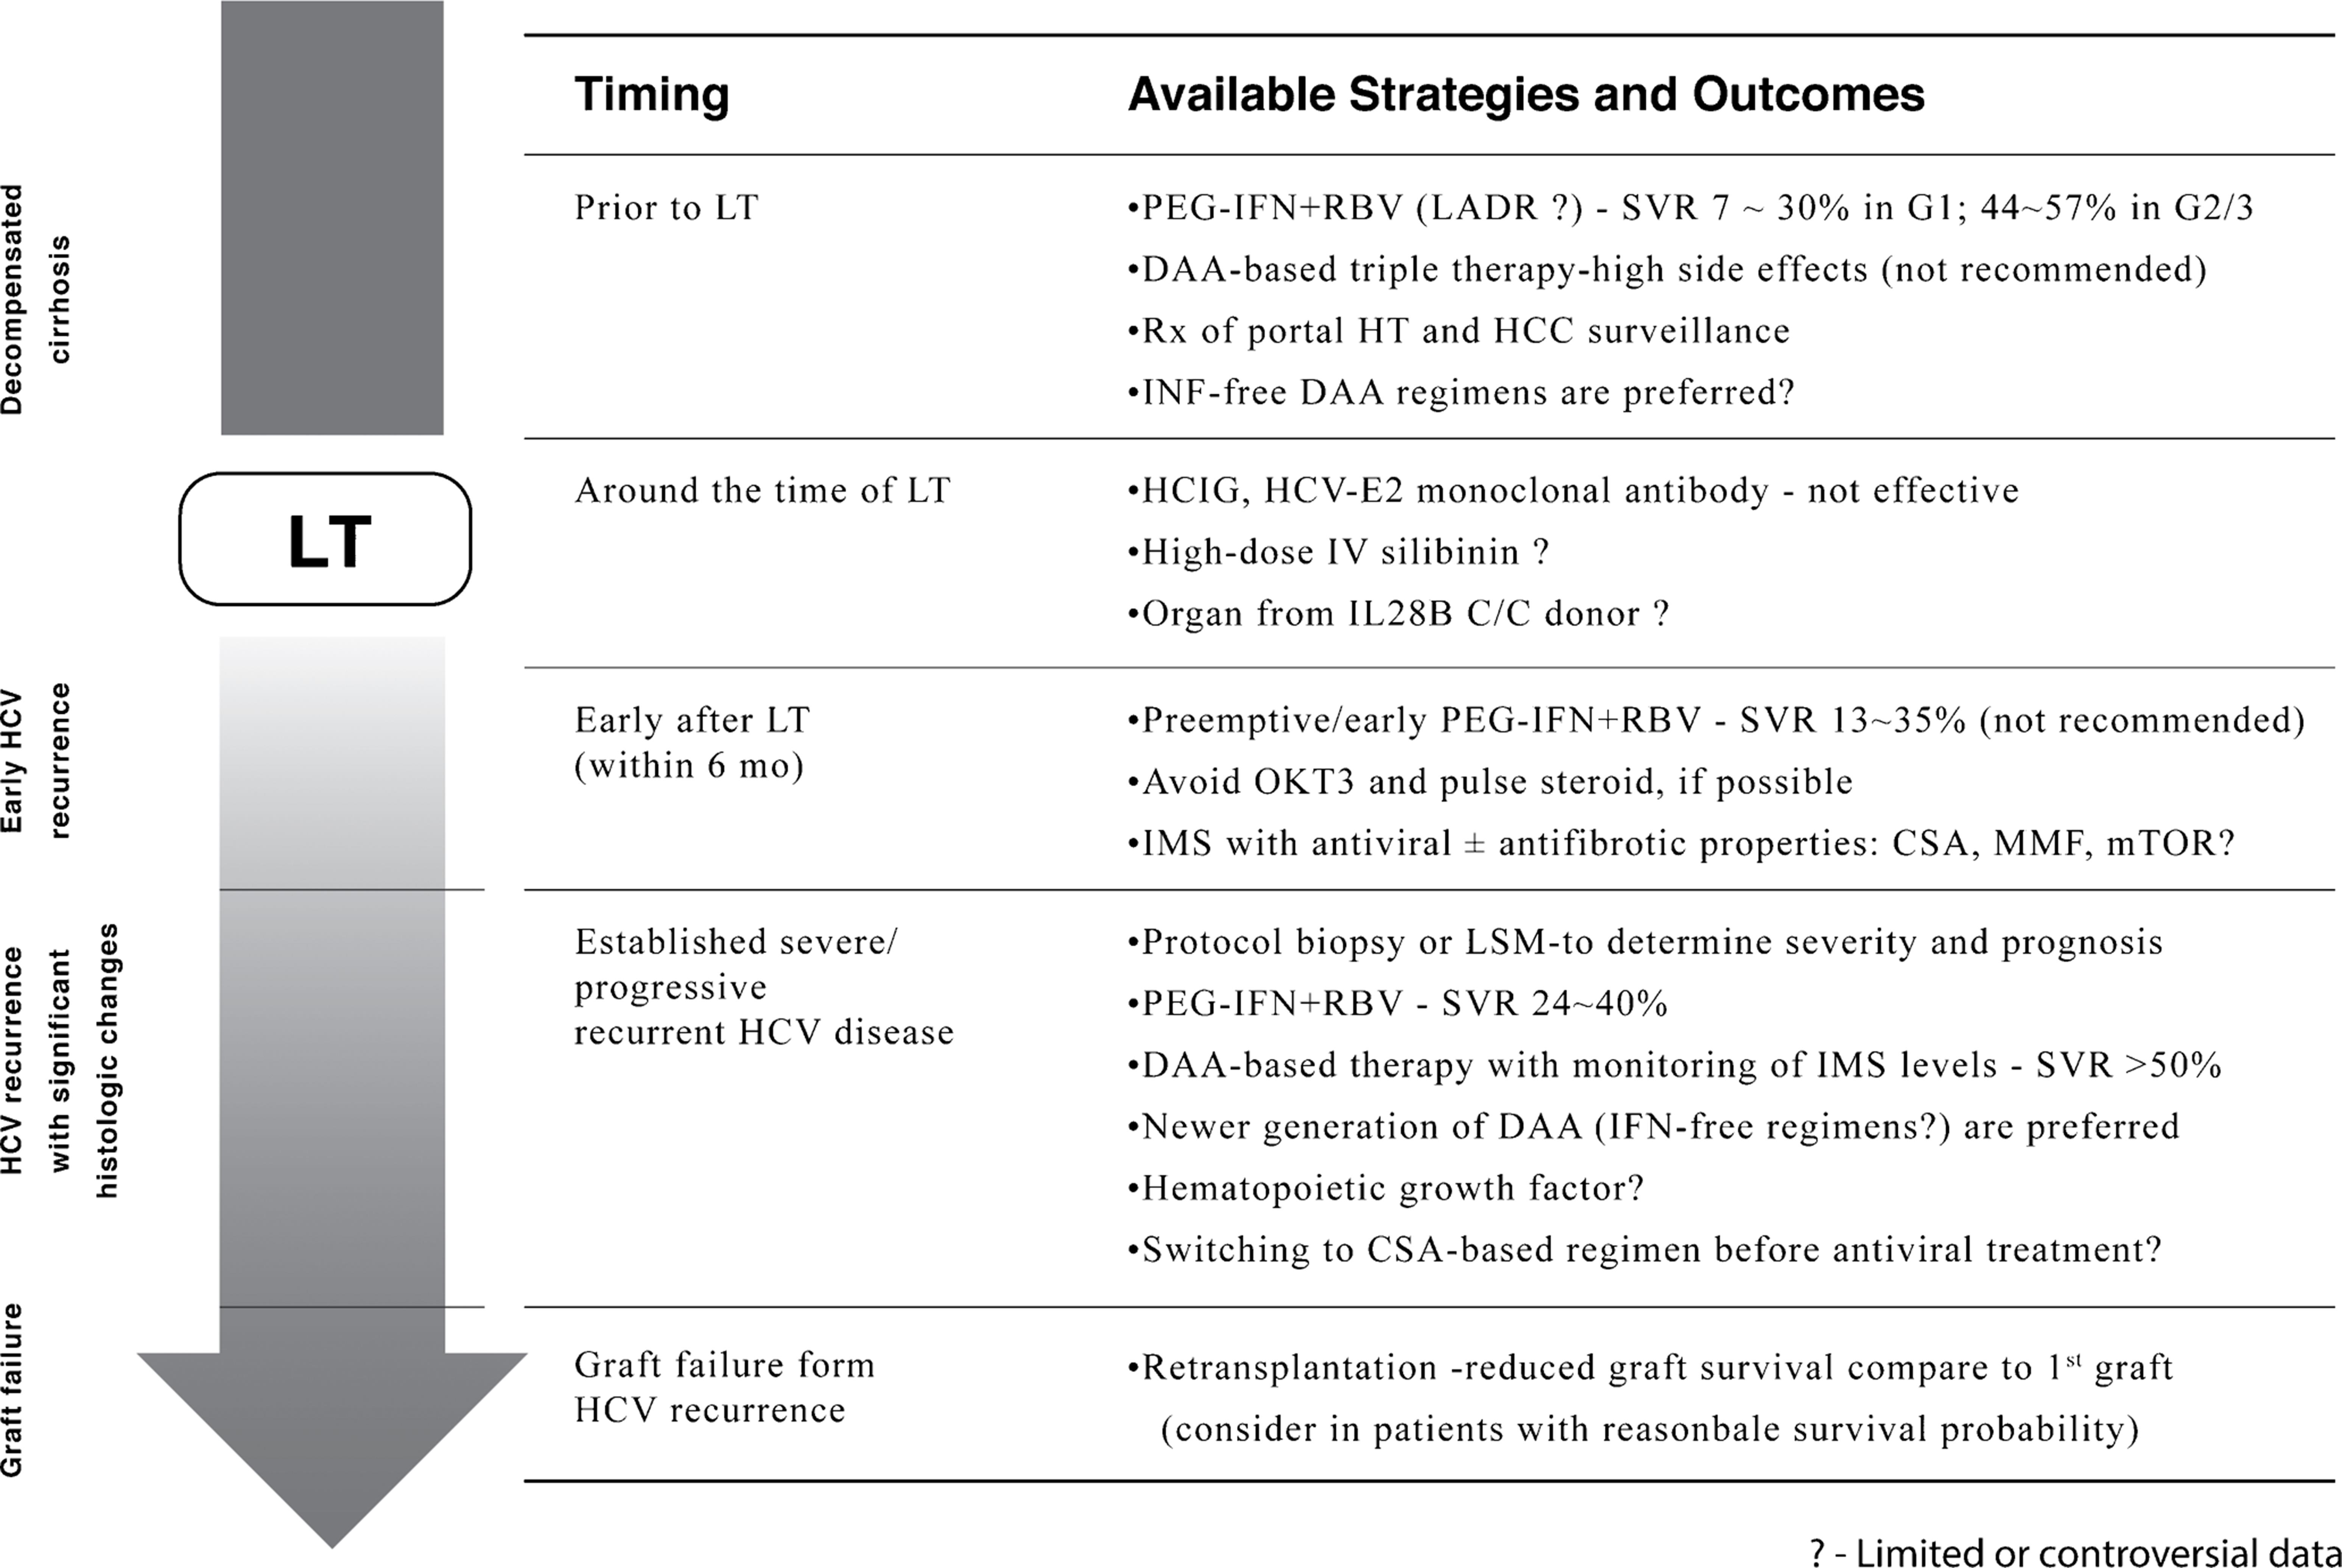 Summary of available HCV management options before and after liver transplantation.